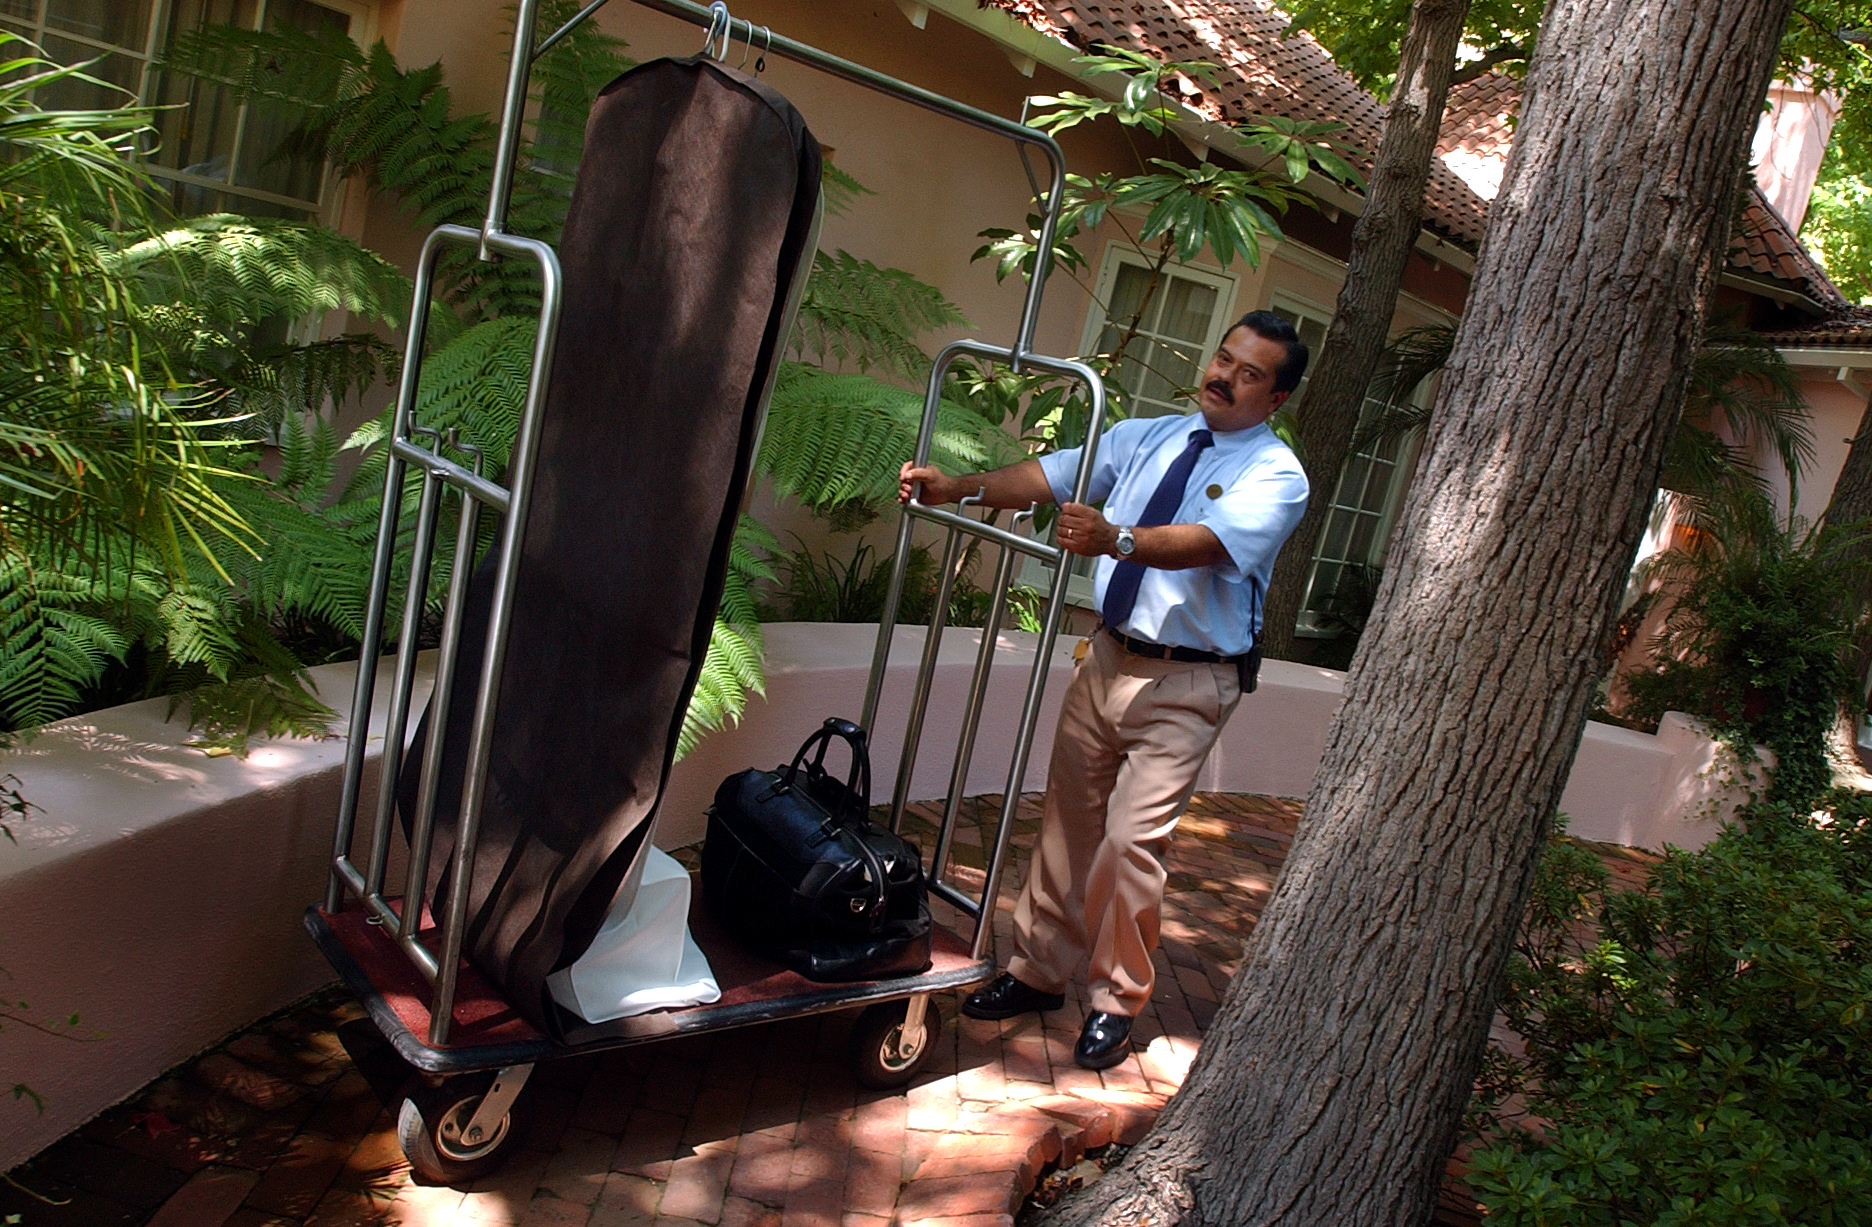 Tony Marquez is the only bellhop in the U.S. to get a 5–star rating from the Mobil hotel rating service. Here, he's seen in action at the Hotel Bel–Air in California on Aug. 13, 2004.